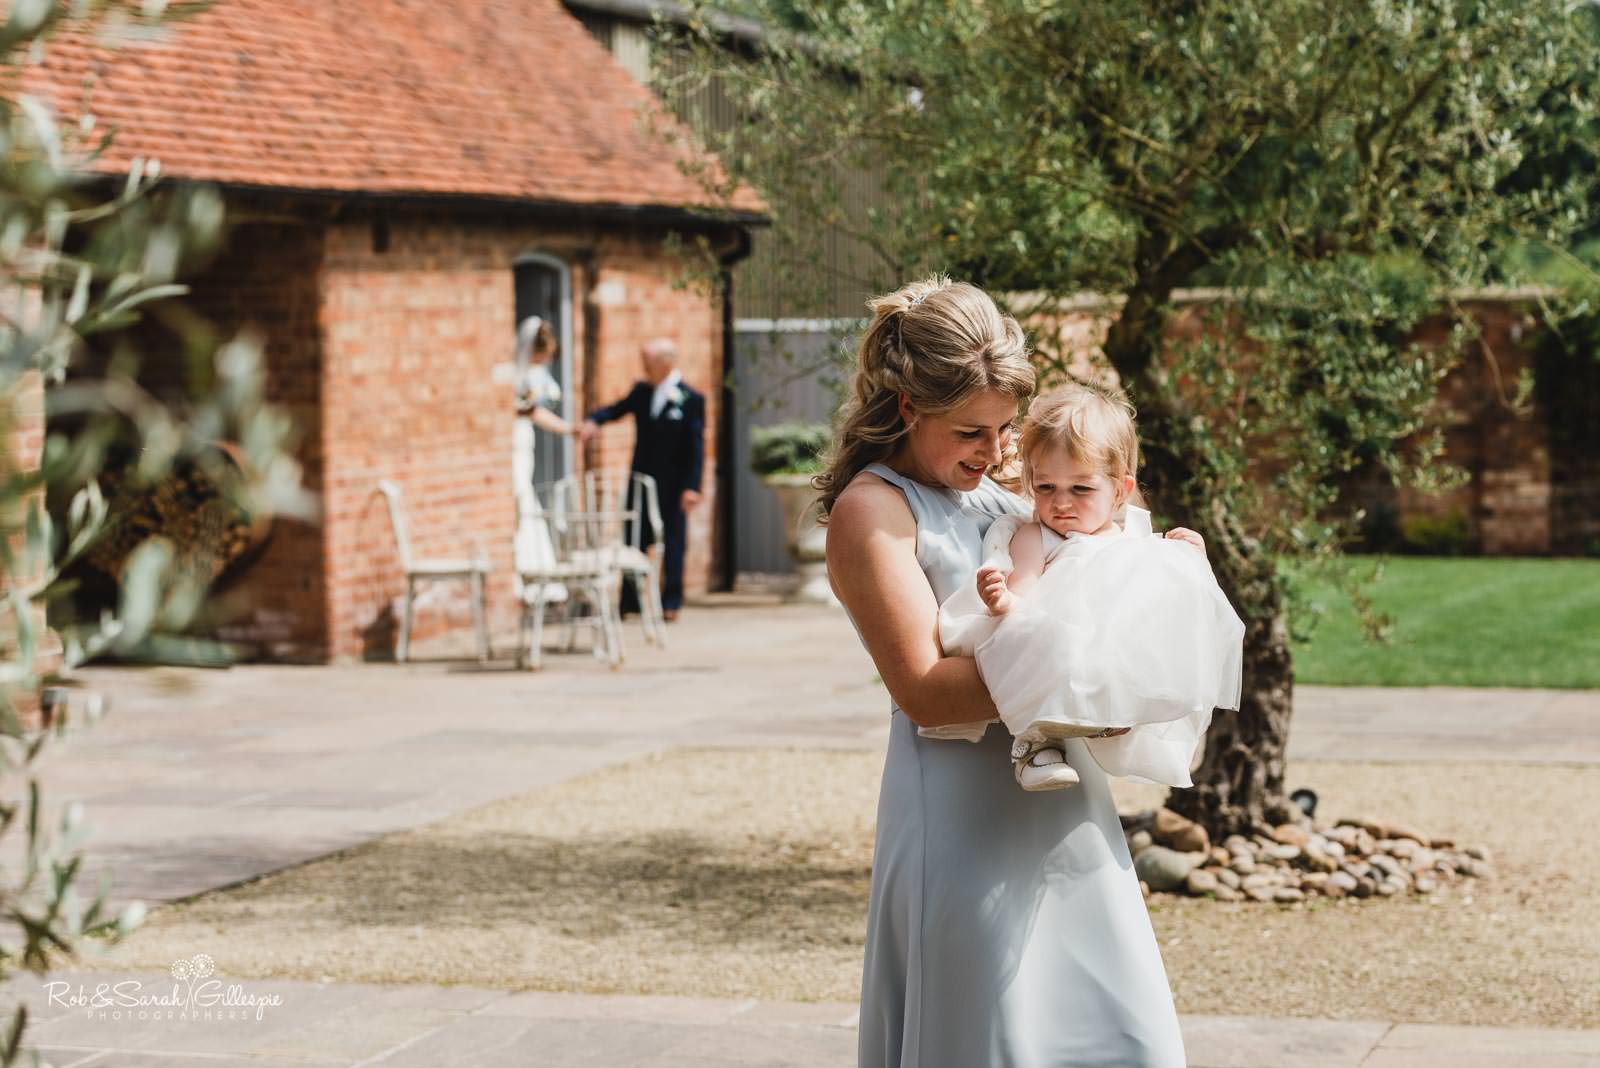 Bridesmaid and flowergirl at Wedding ceremony at Swallows Nest Barn